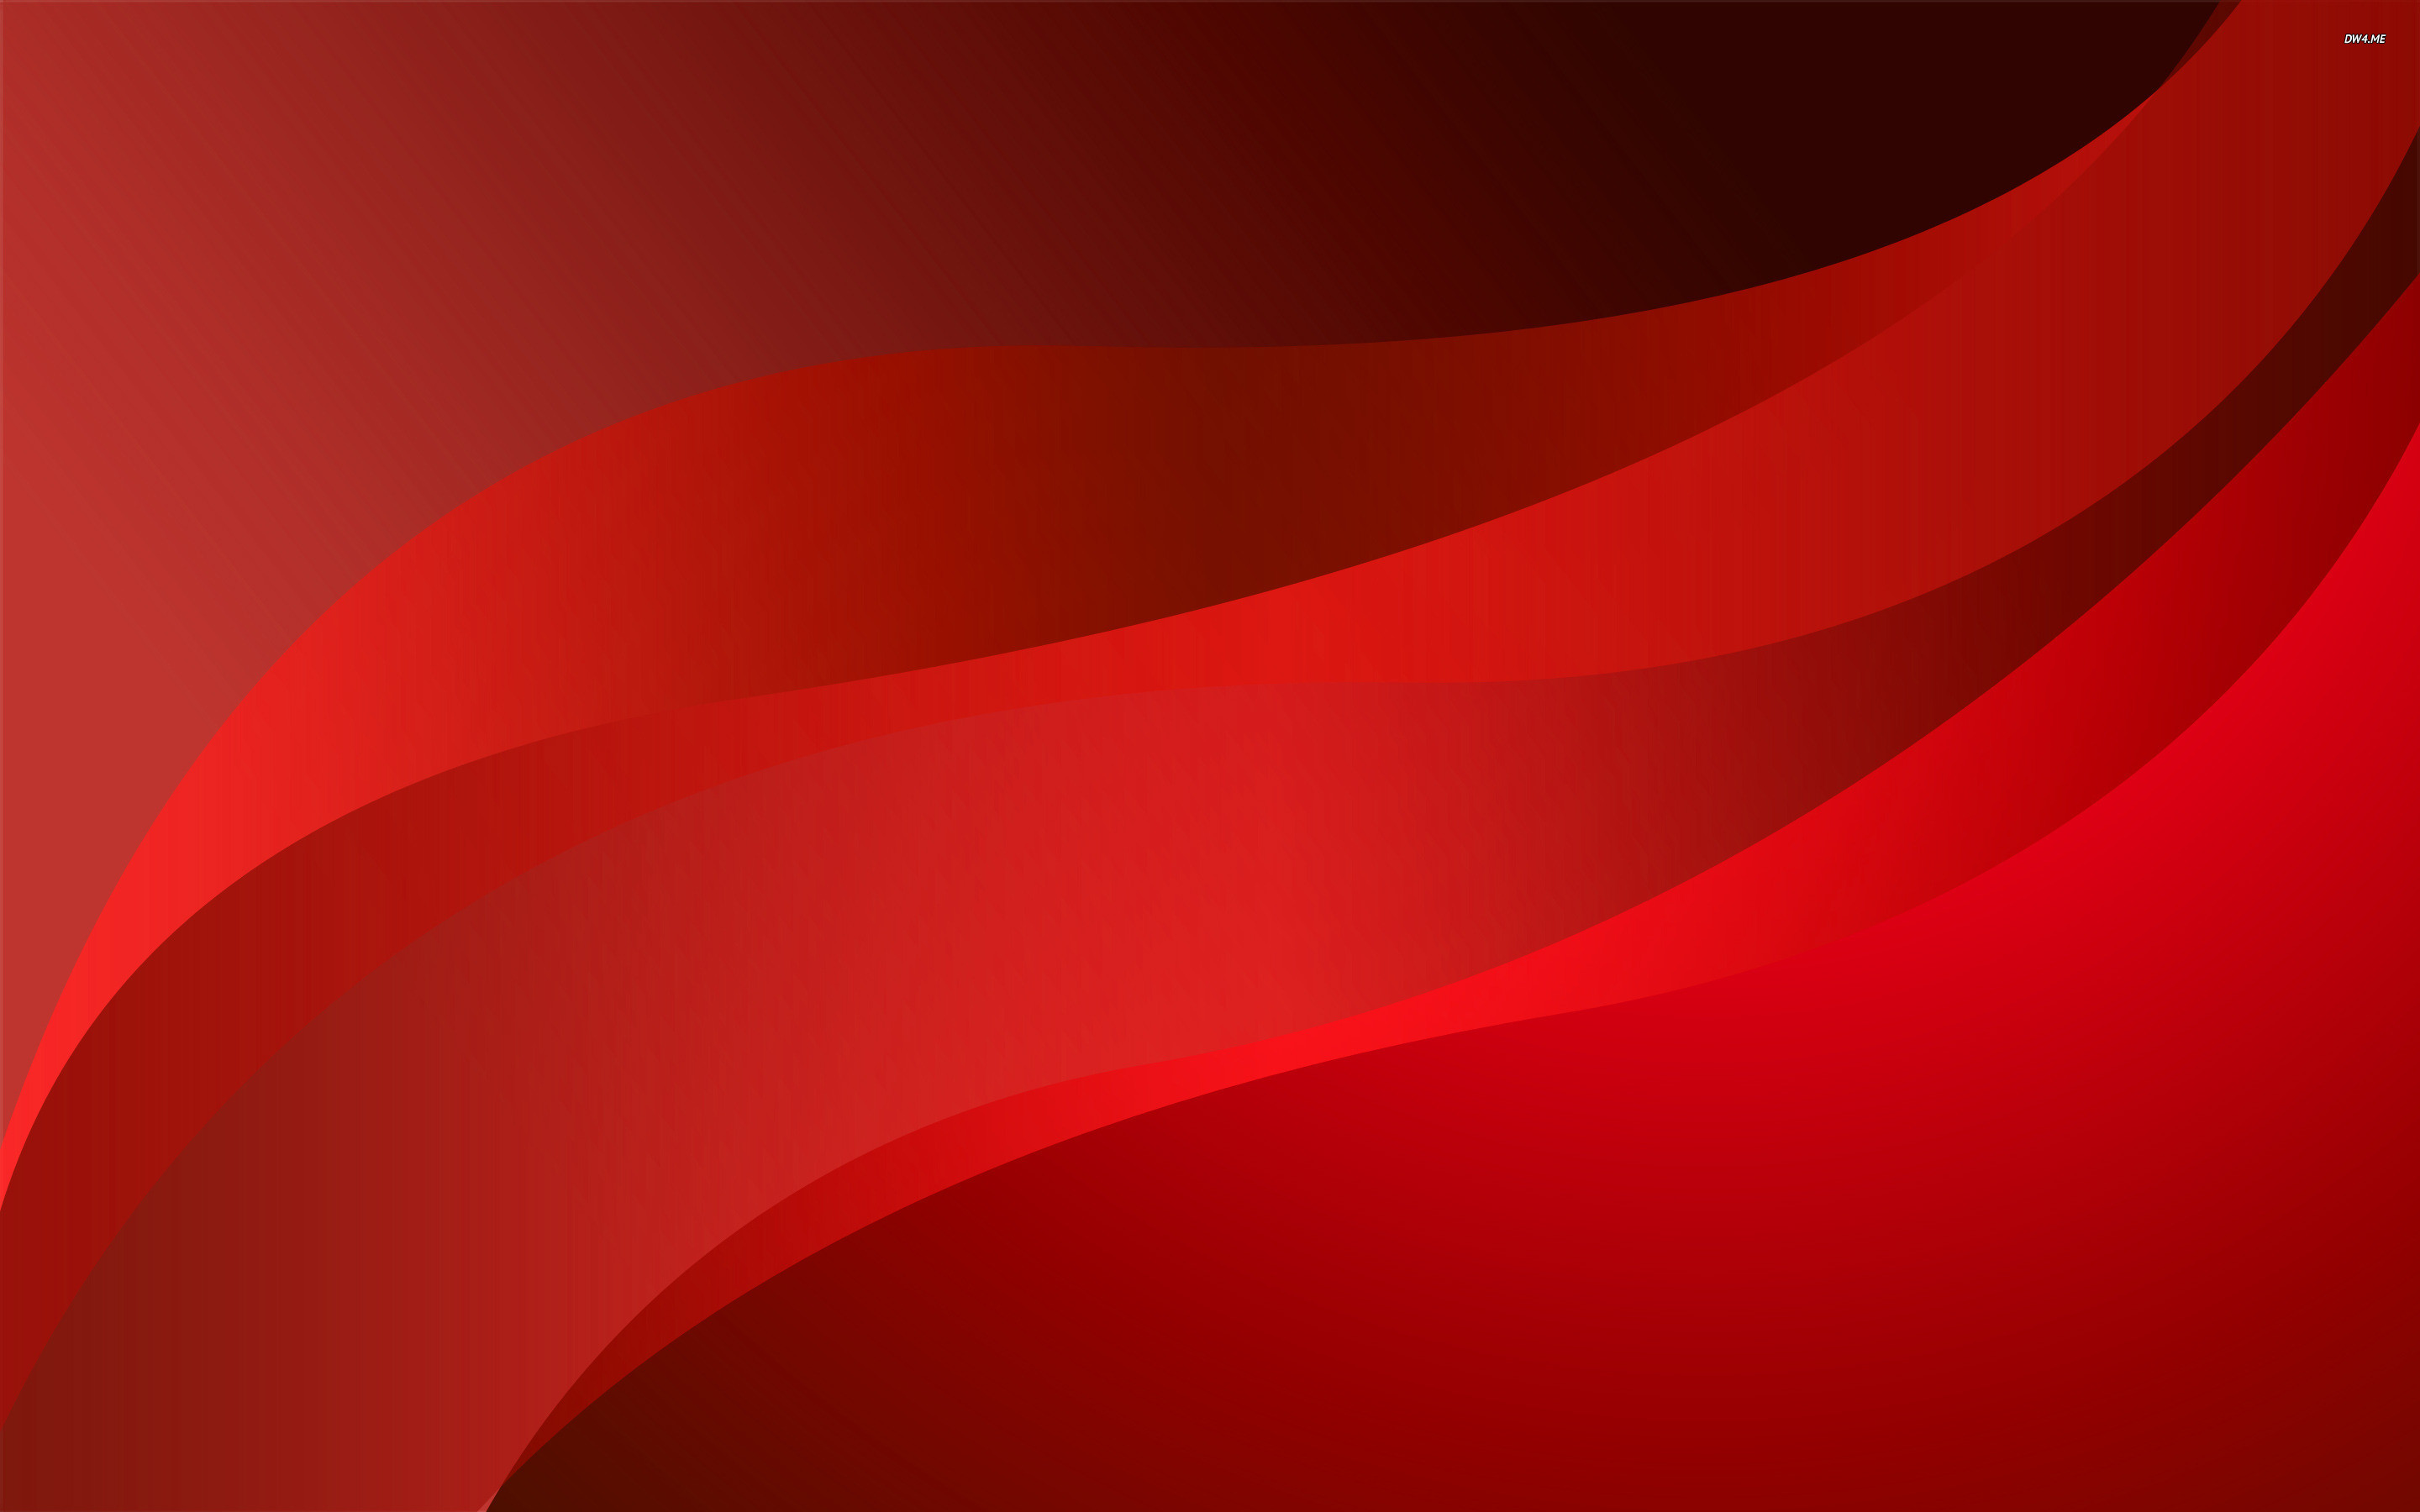 red curves abstract wallpaper | HD Wallpaper, Backgrounds, Tumblr .